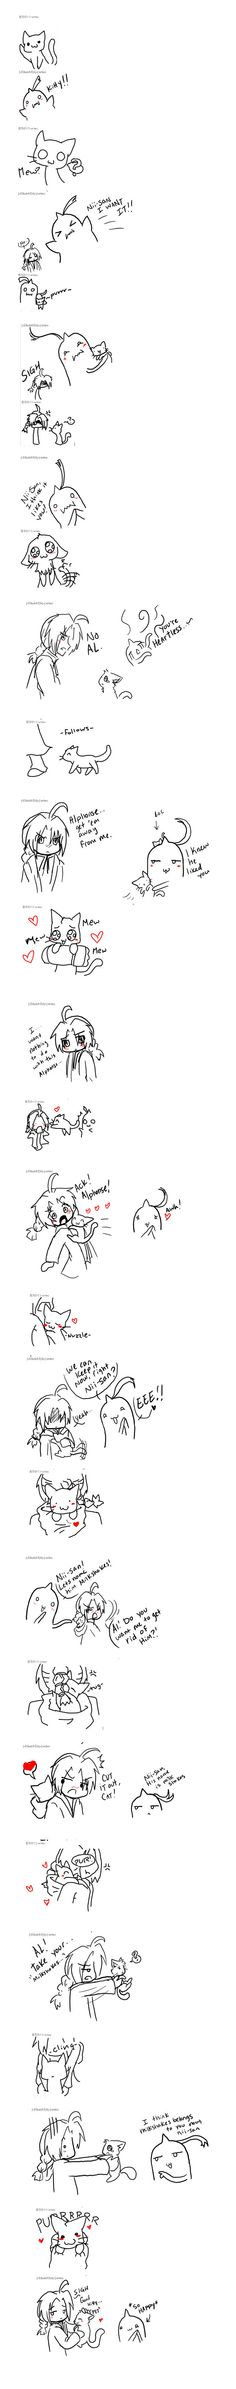 How Al got Edward to keep it.. by Digiko.deviantart.com on @DeviantArt << Omg this is so cuuuuttte